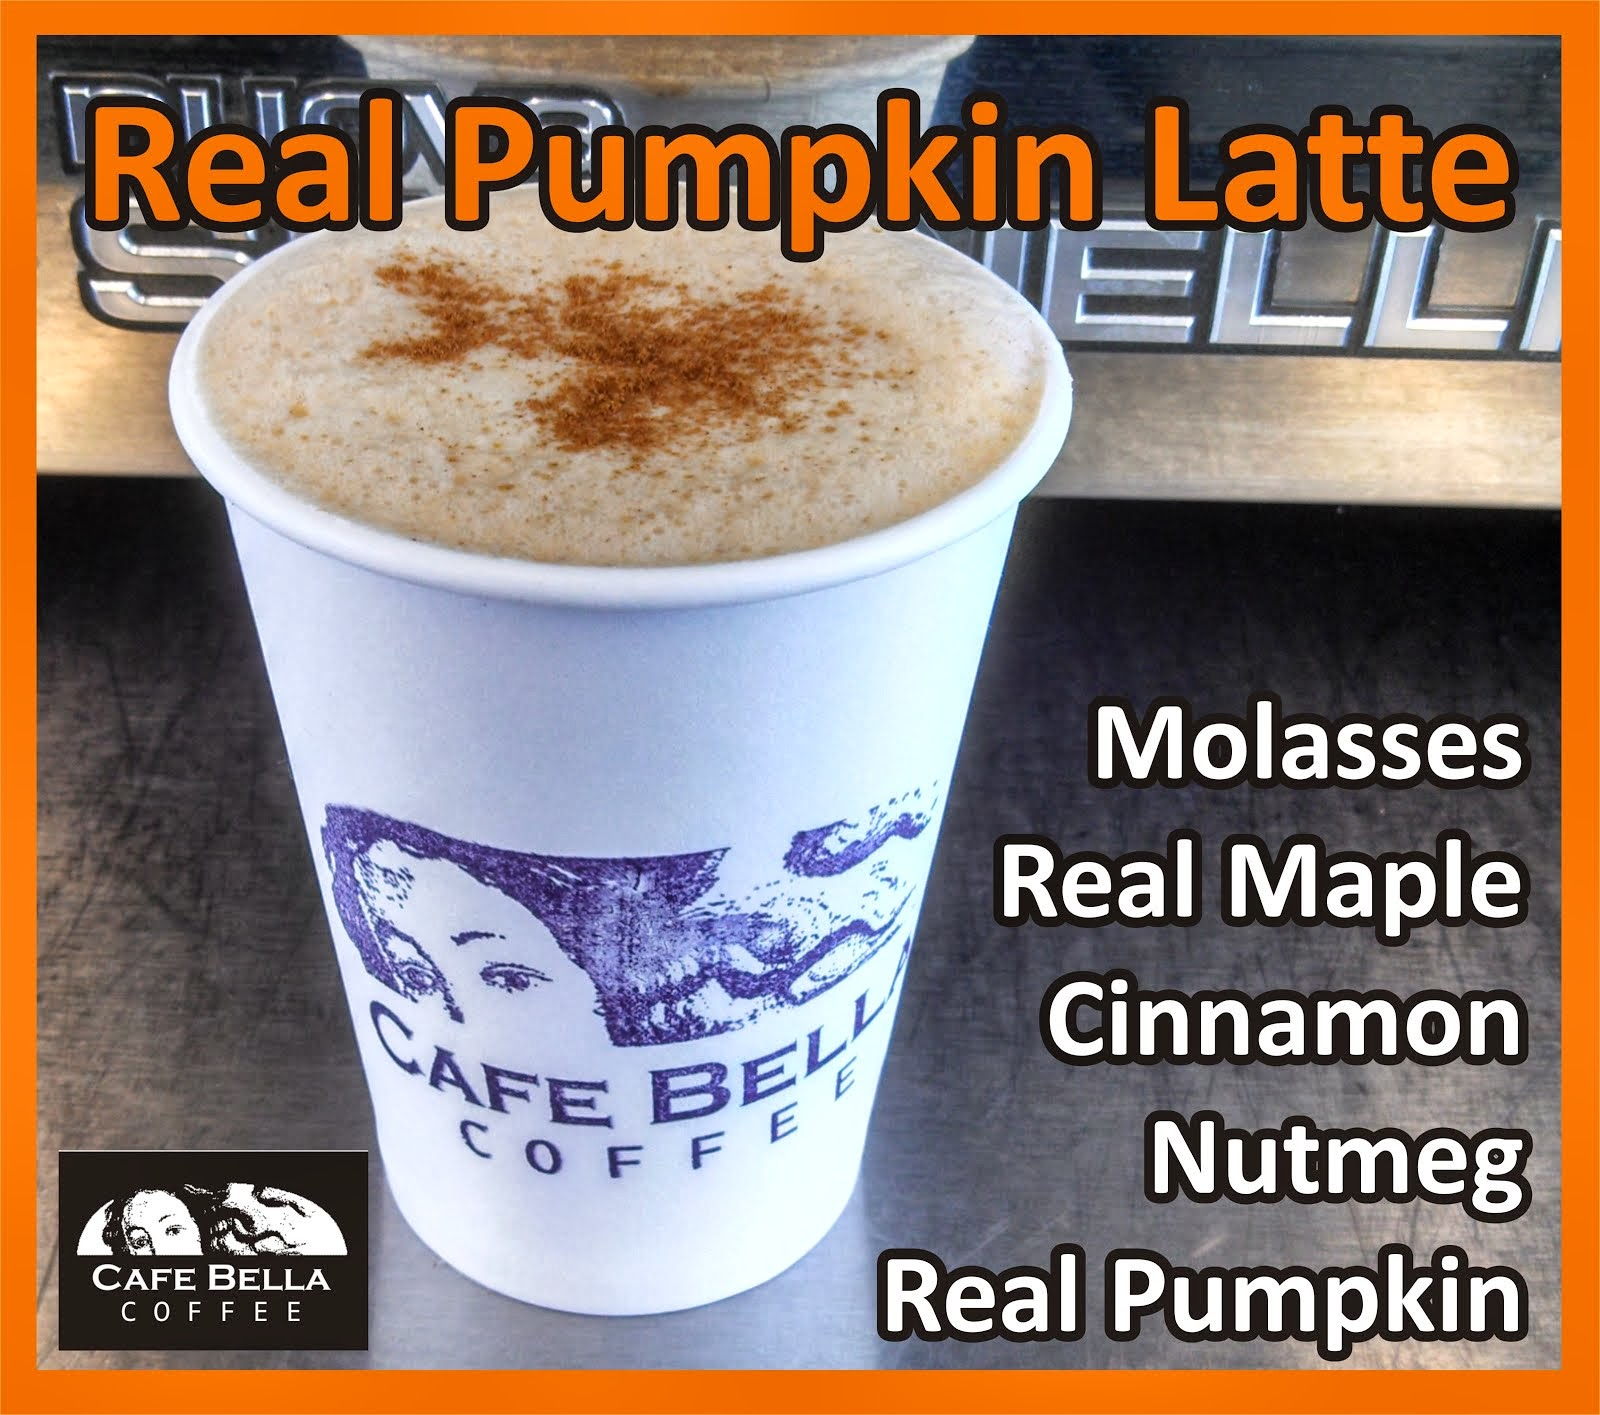 Real Pumpkin Latte!